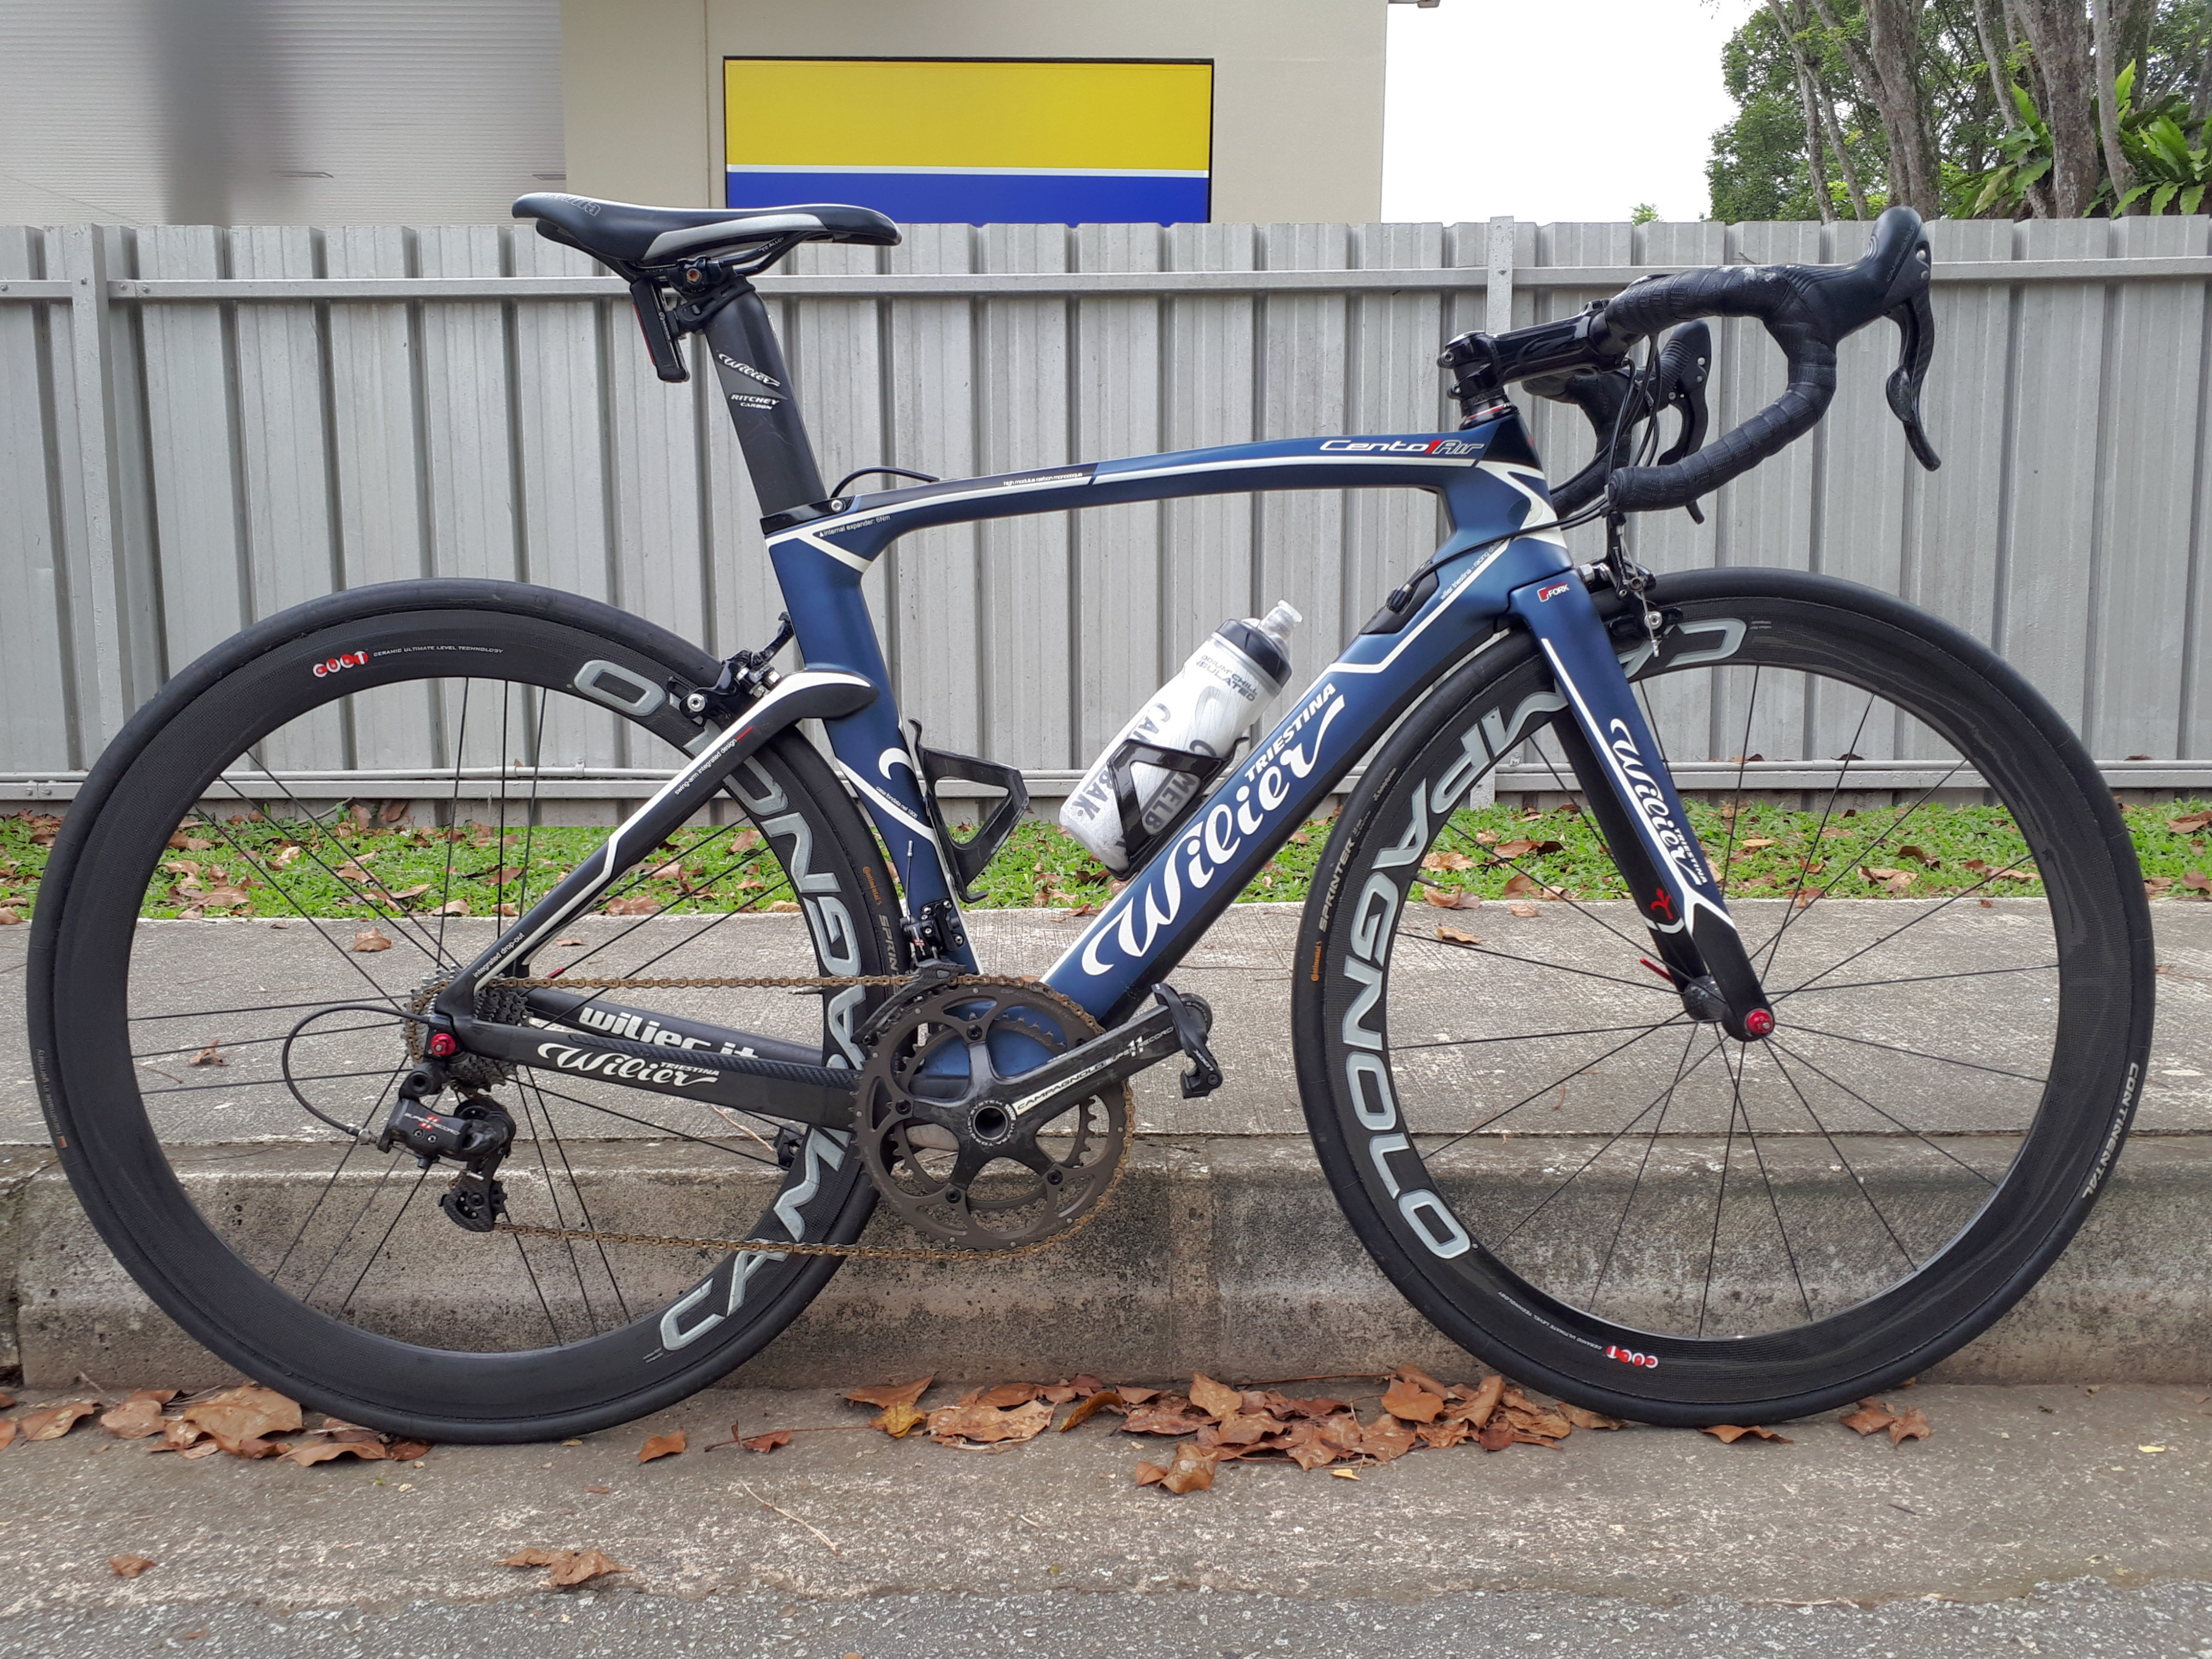 e56cfd4275a Wilier cento 1 air, Bicycles & PMDs, Bicycles, Road Bikes on Carousell